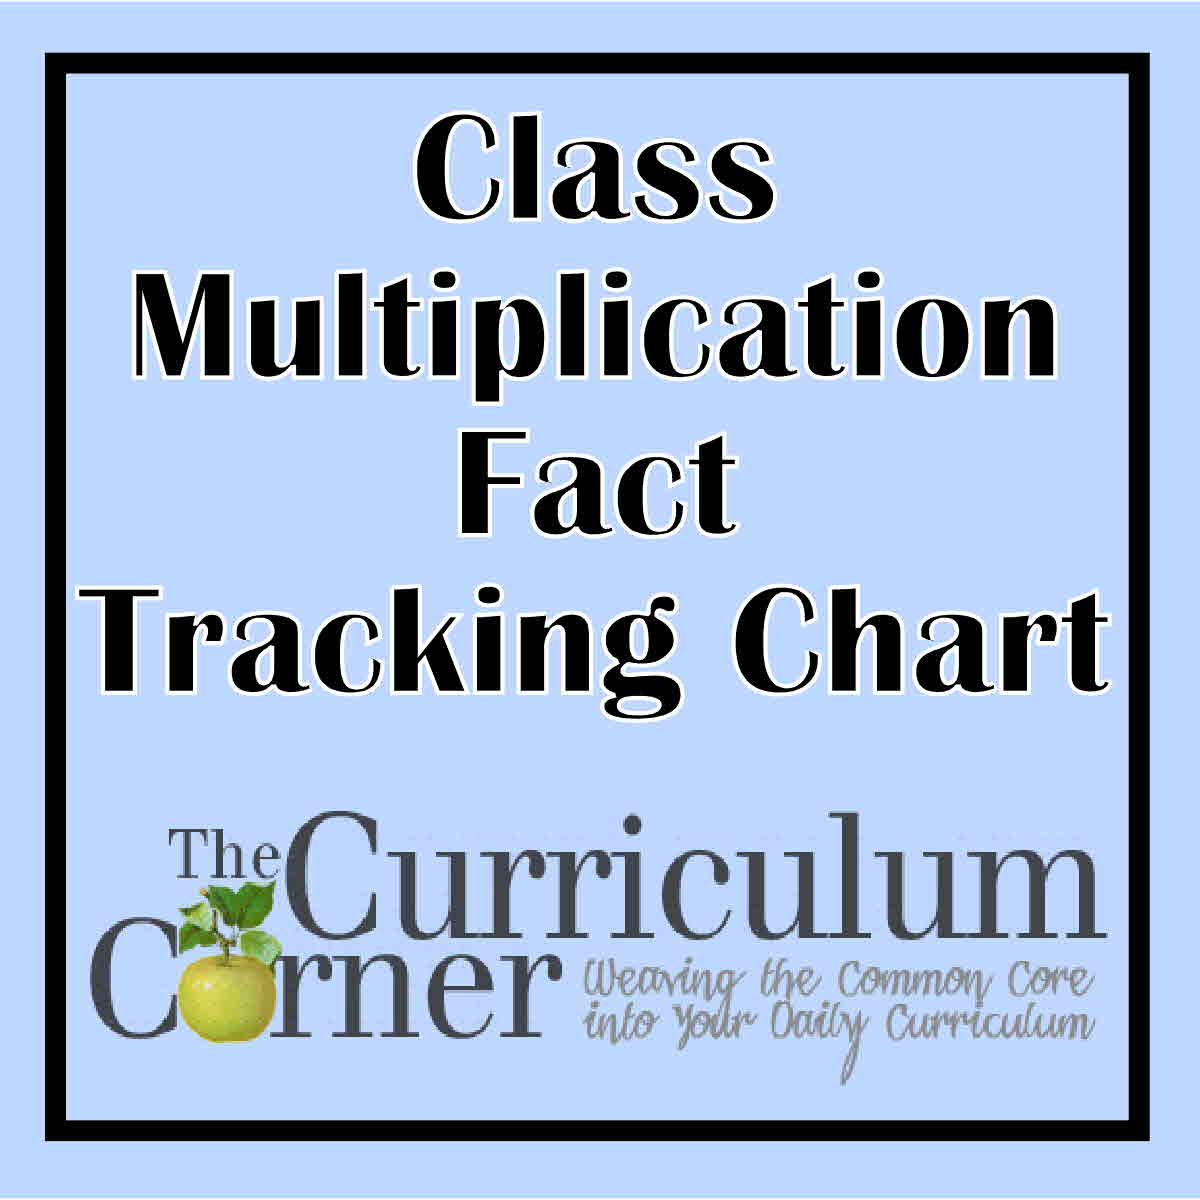 Class Multiplication Facts Tracking Chart The Curriculum Corner 123